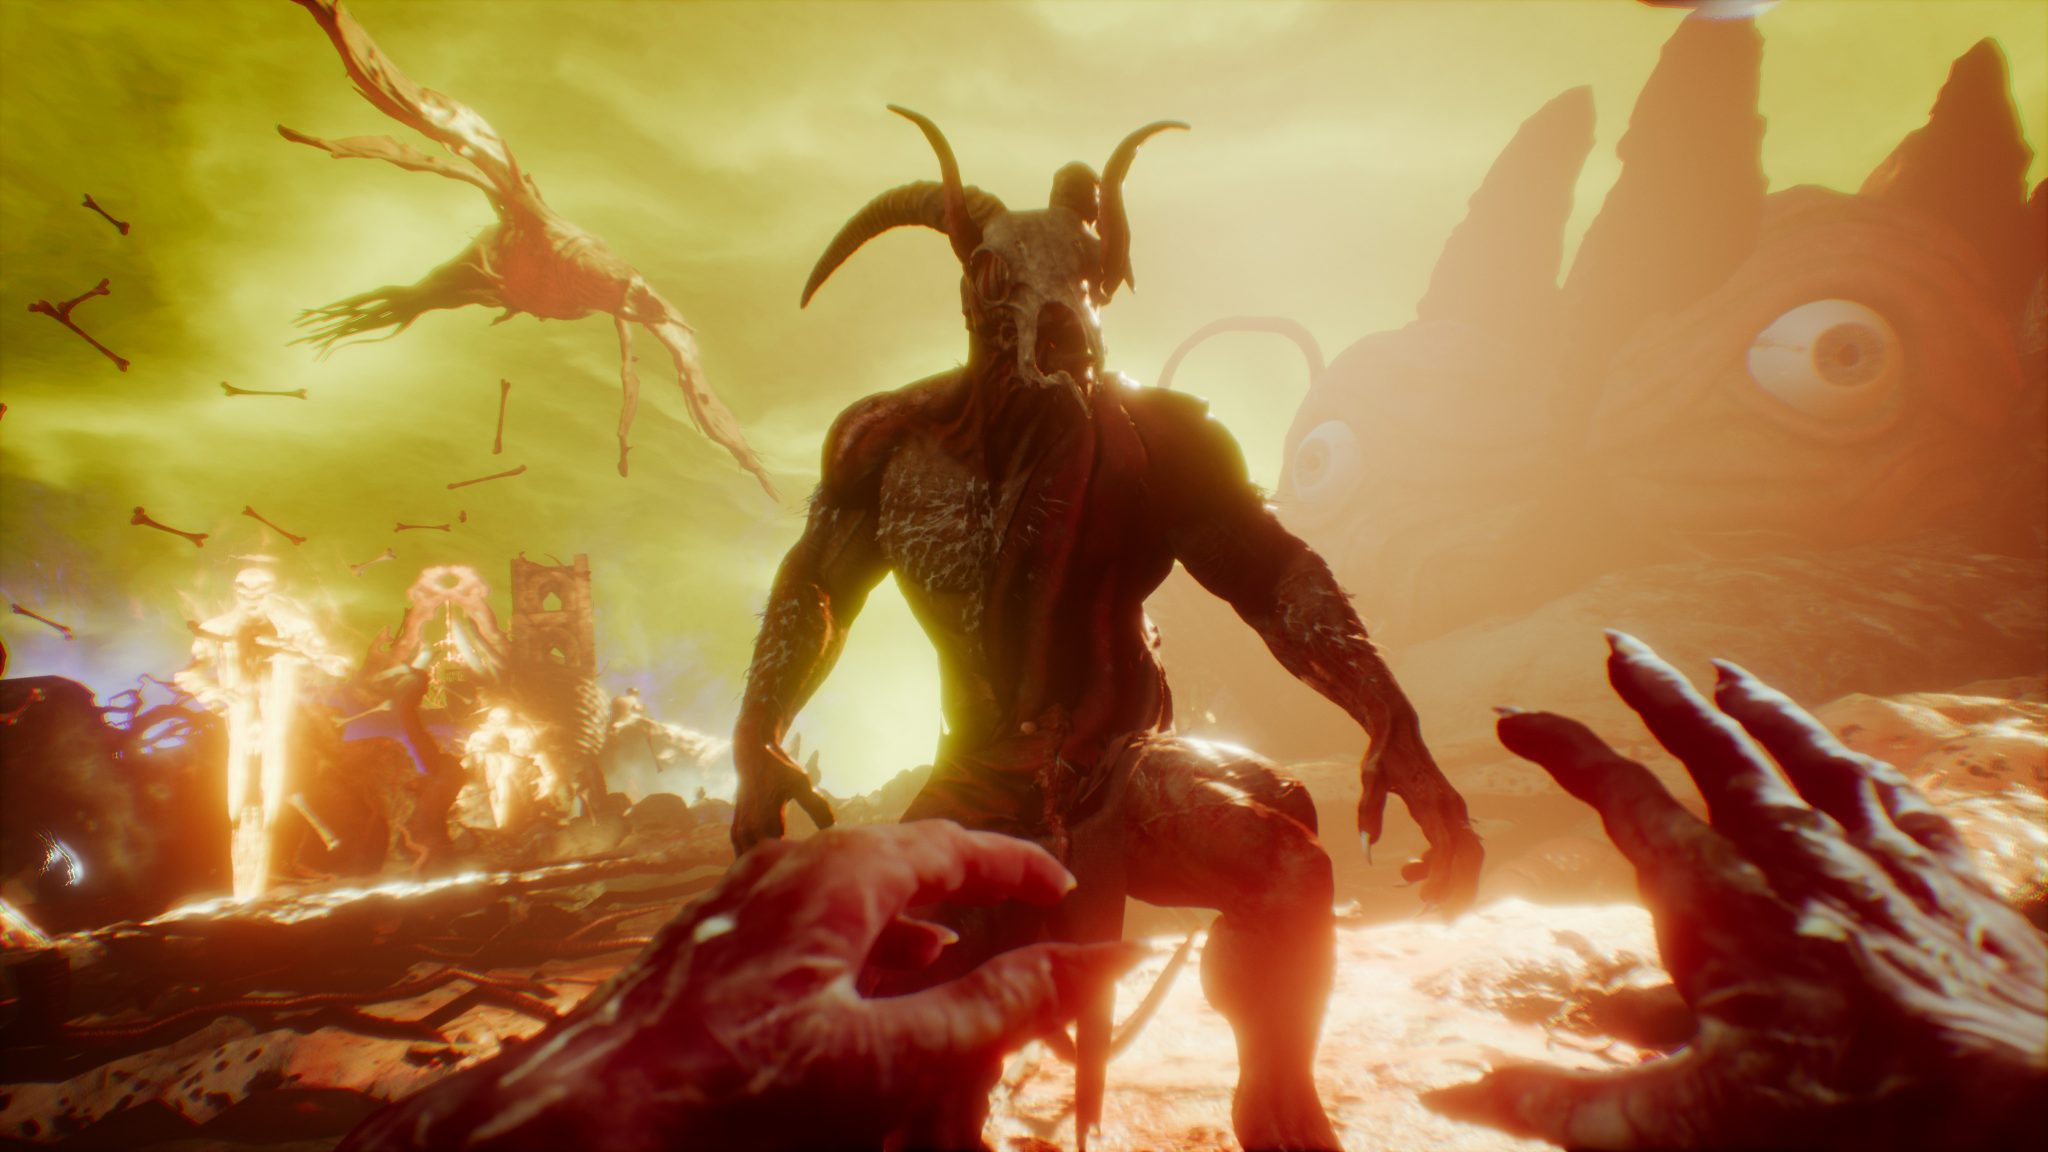 Agony Unrated (2018, Madmind Studio) PC Review